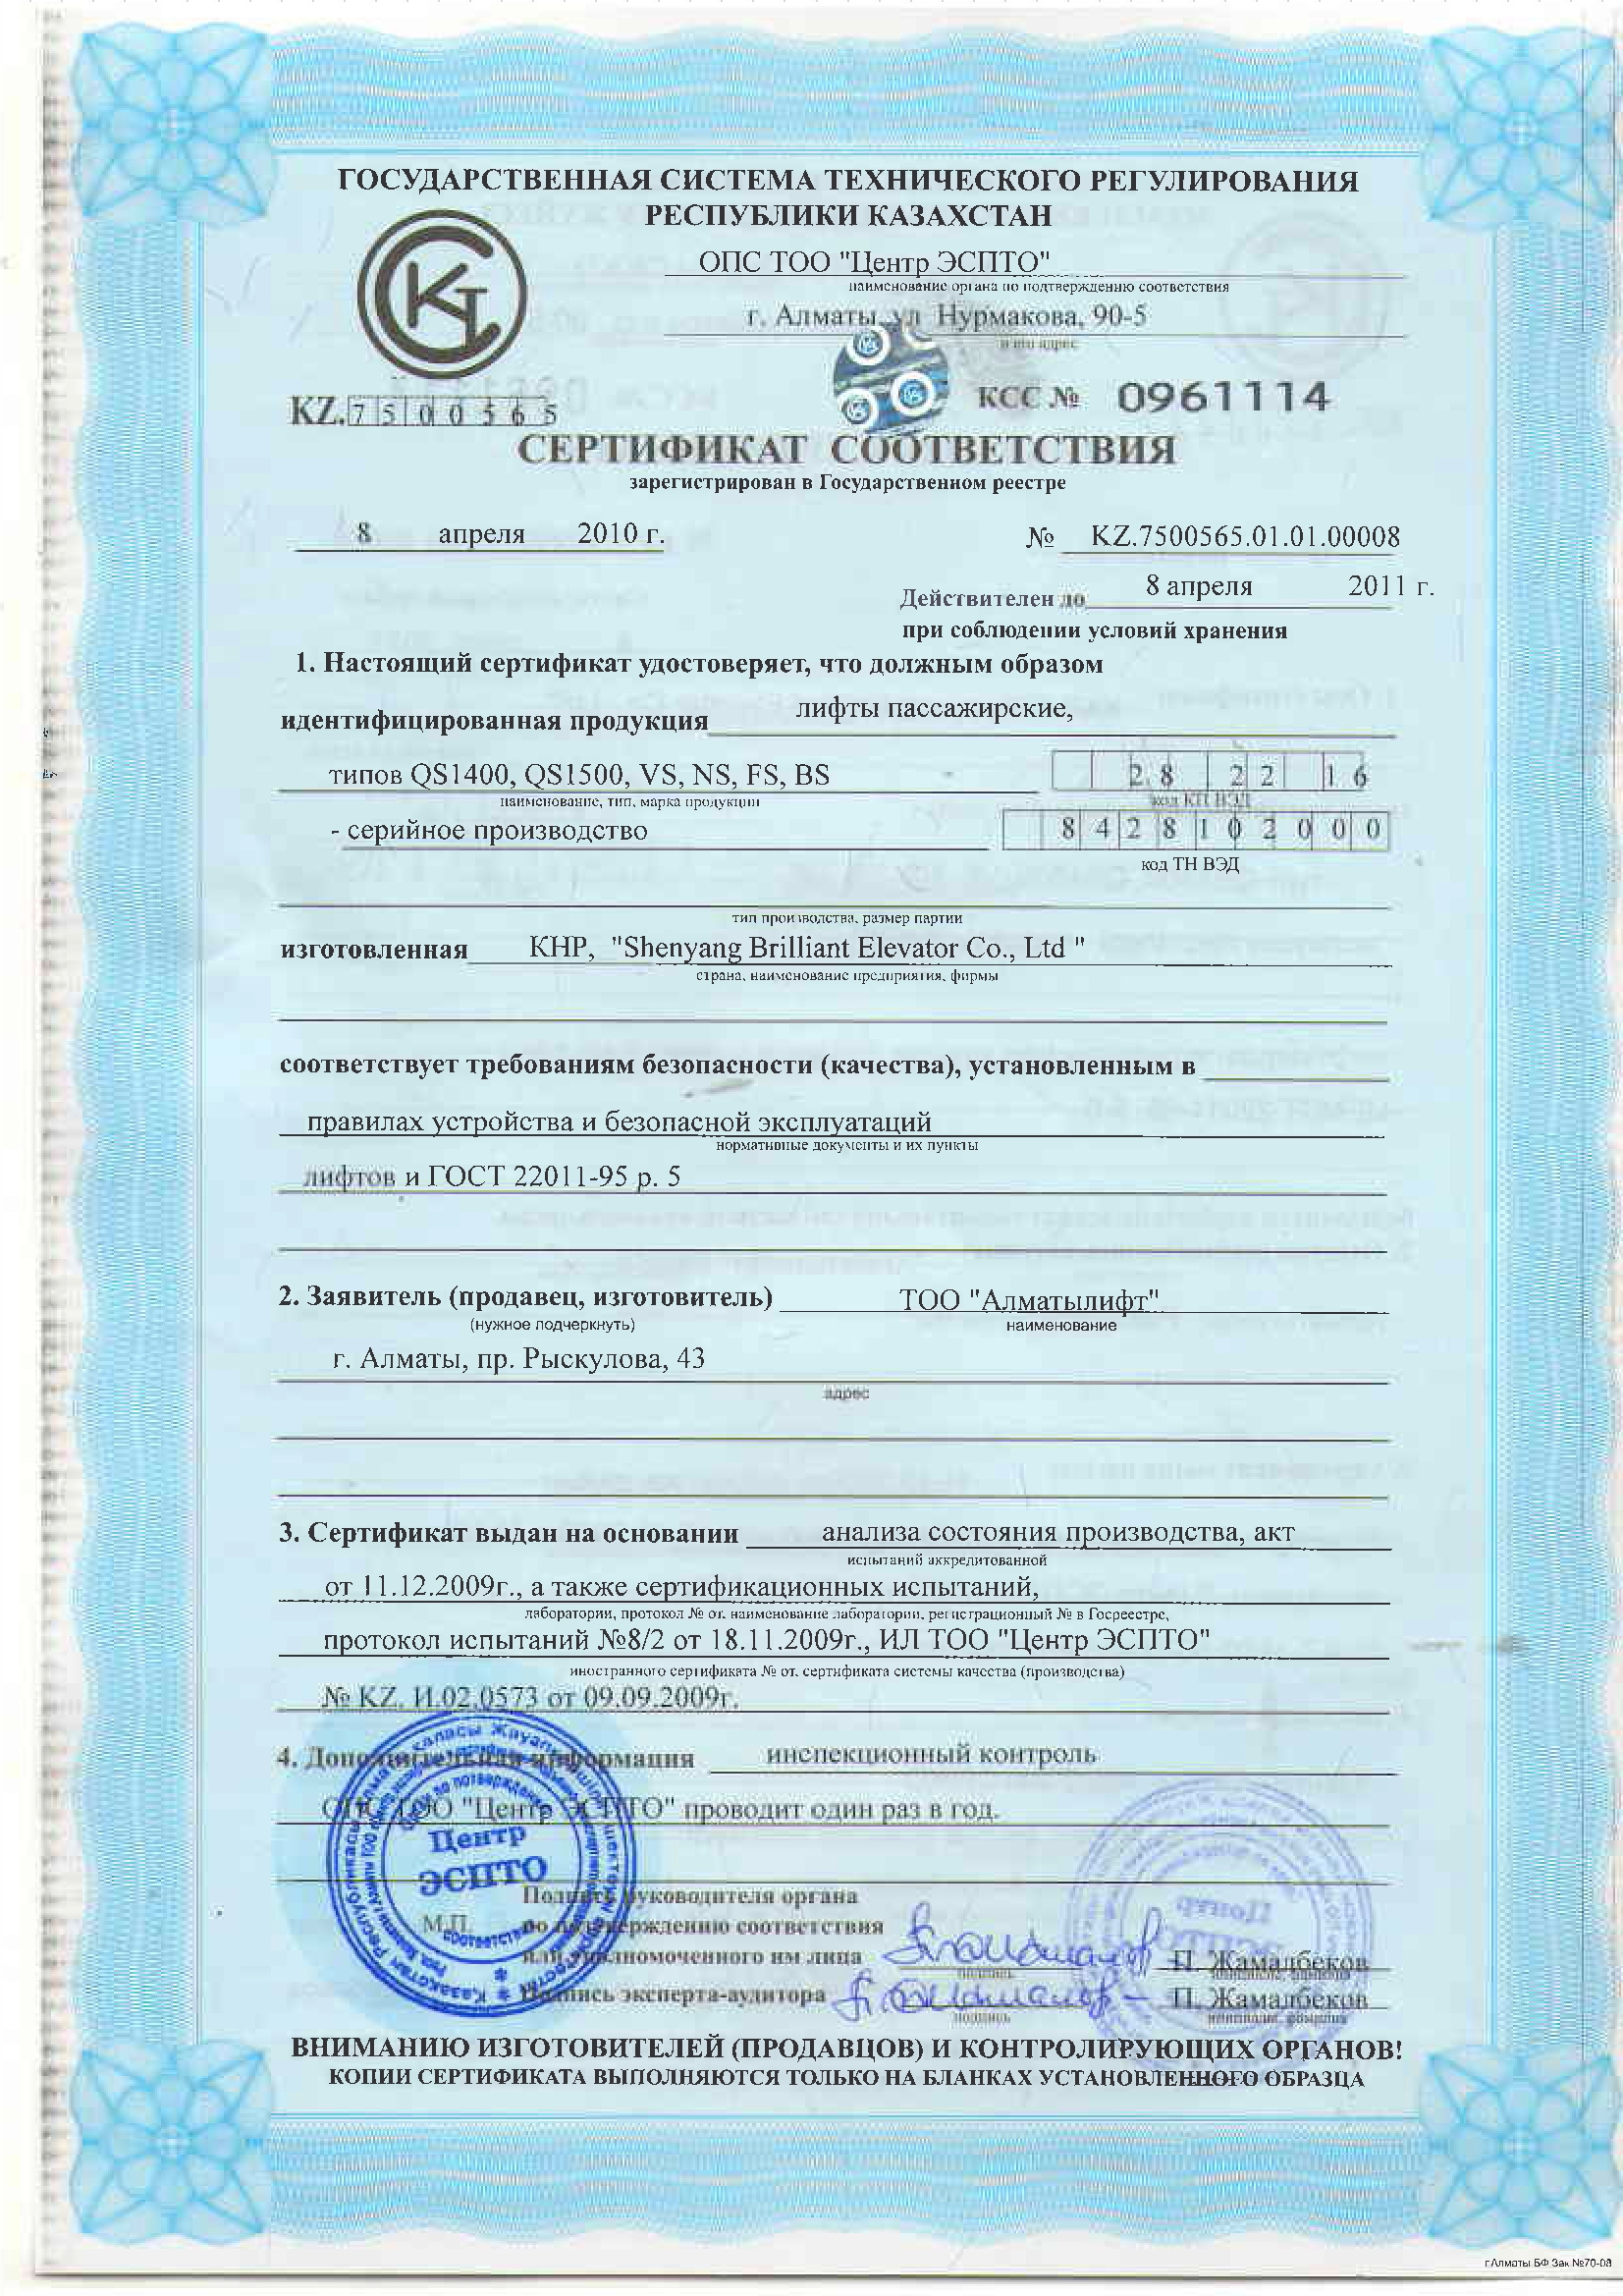 Kazakh Certification